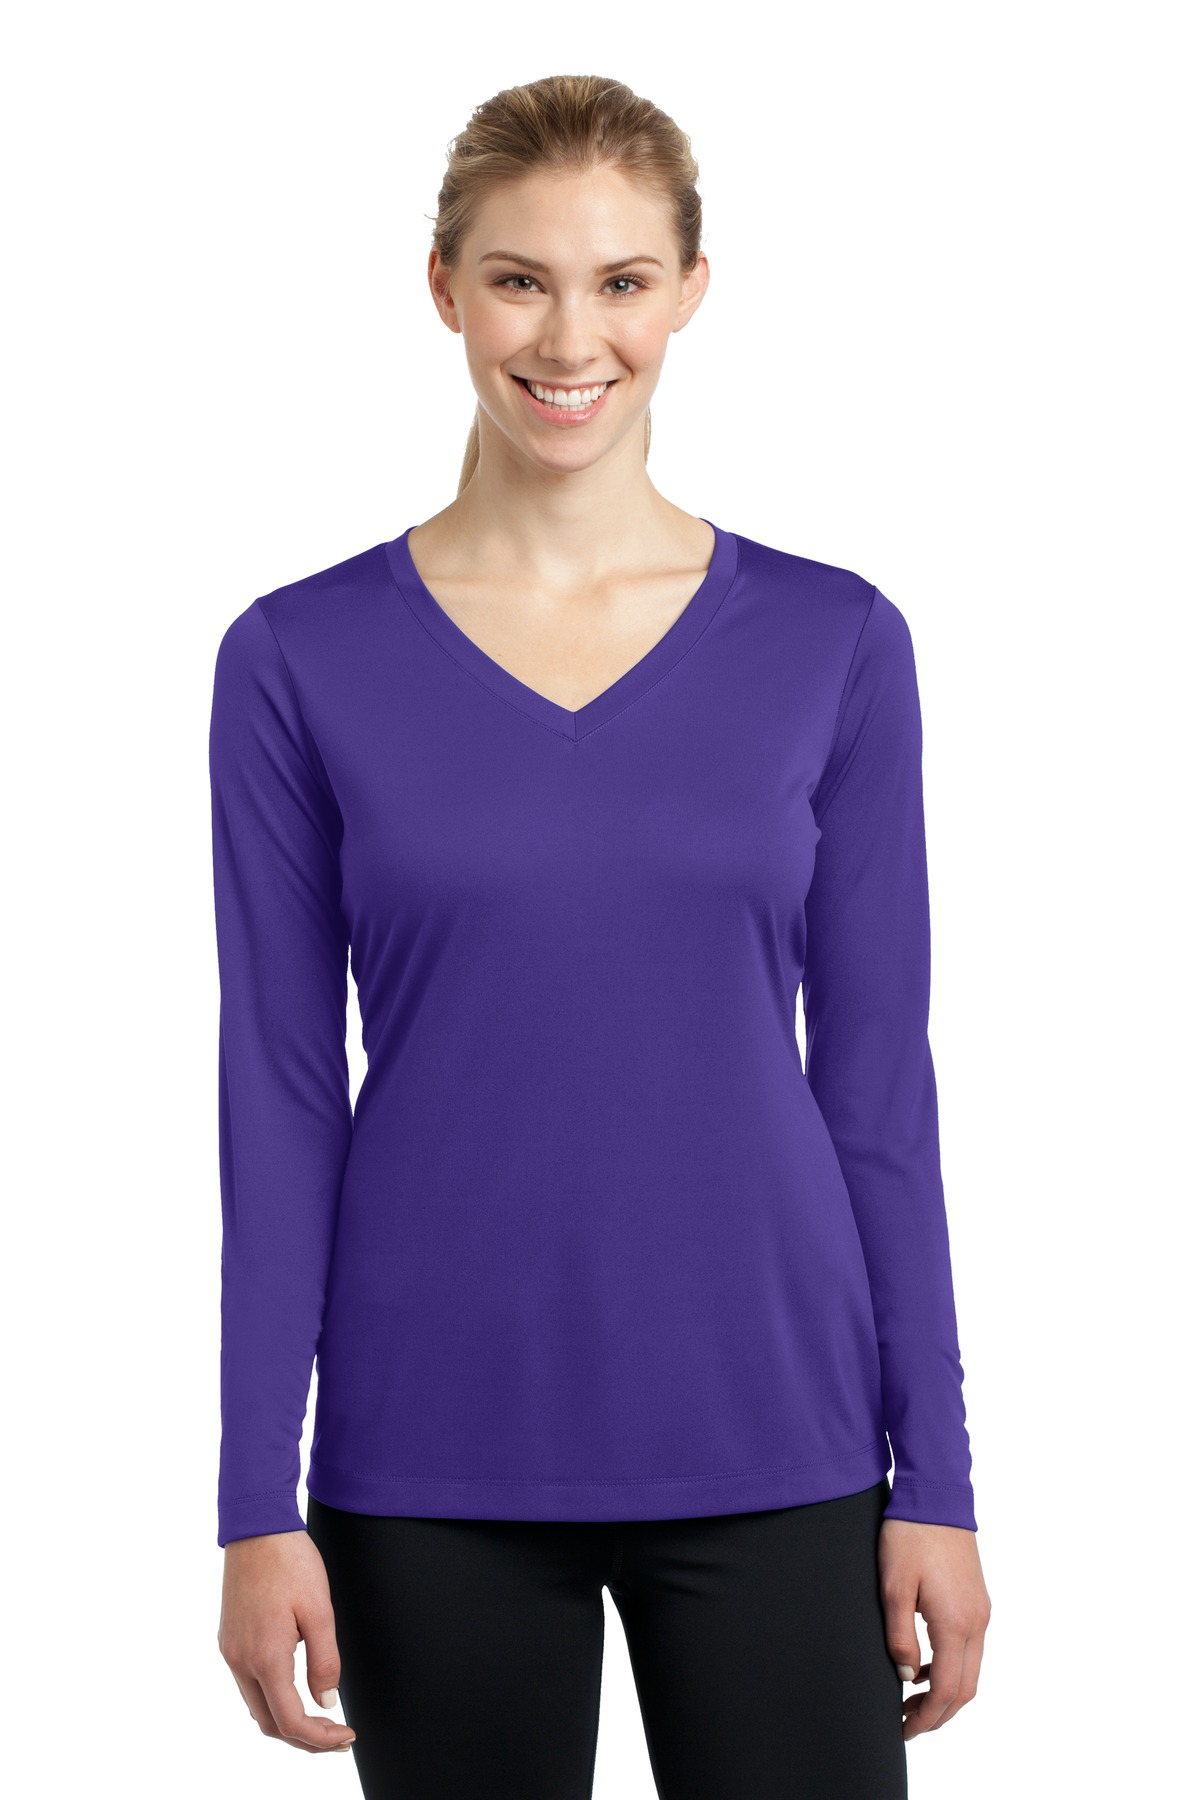 Sport-Tek ®  Ladies Long Sleeve PosiCharge ®  Competitor™ V-Neck Tee. LST353LS - Purple